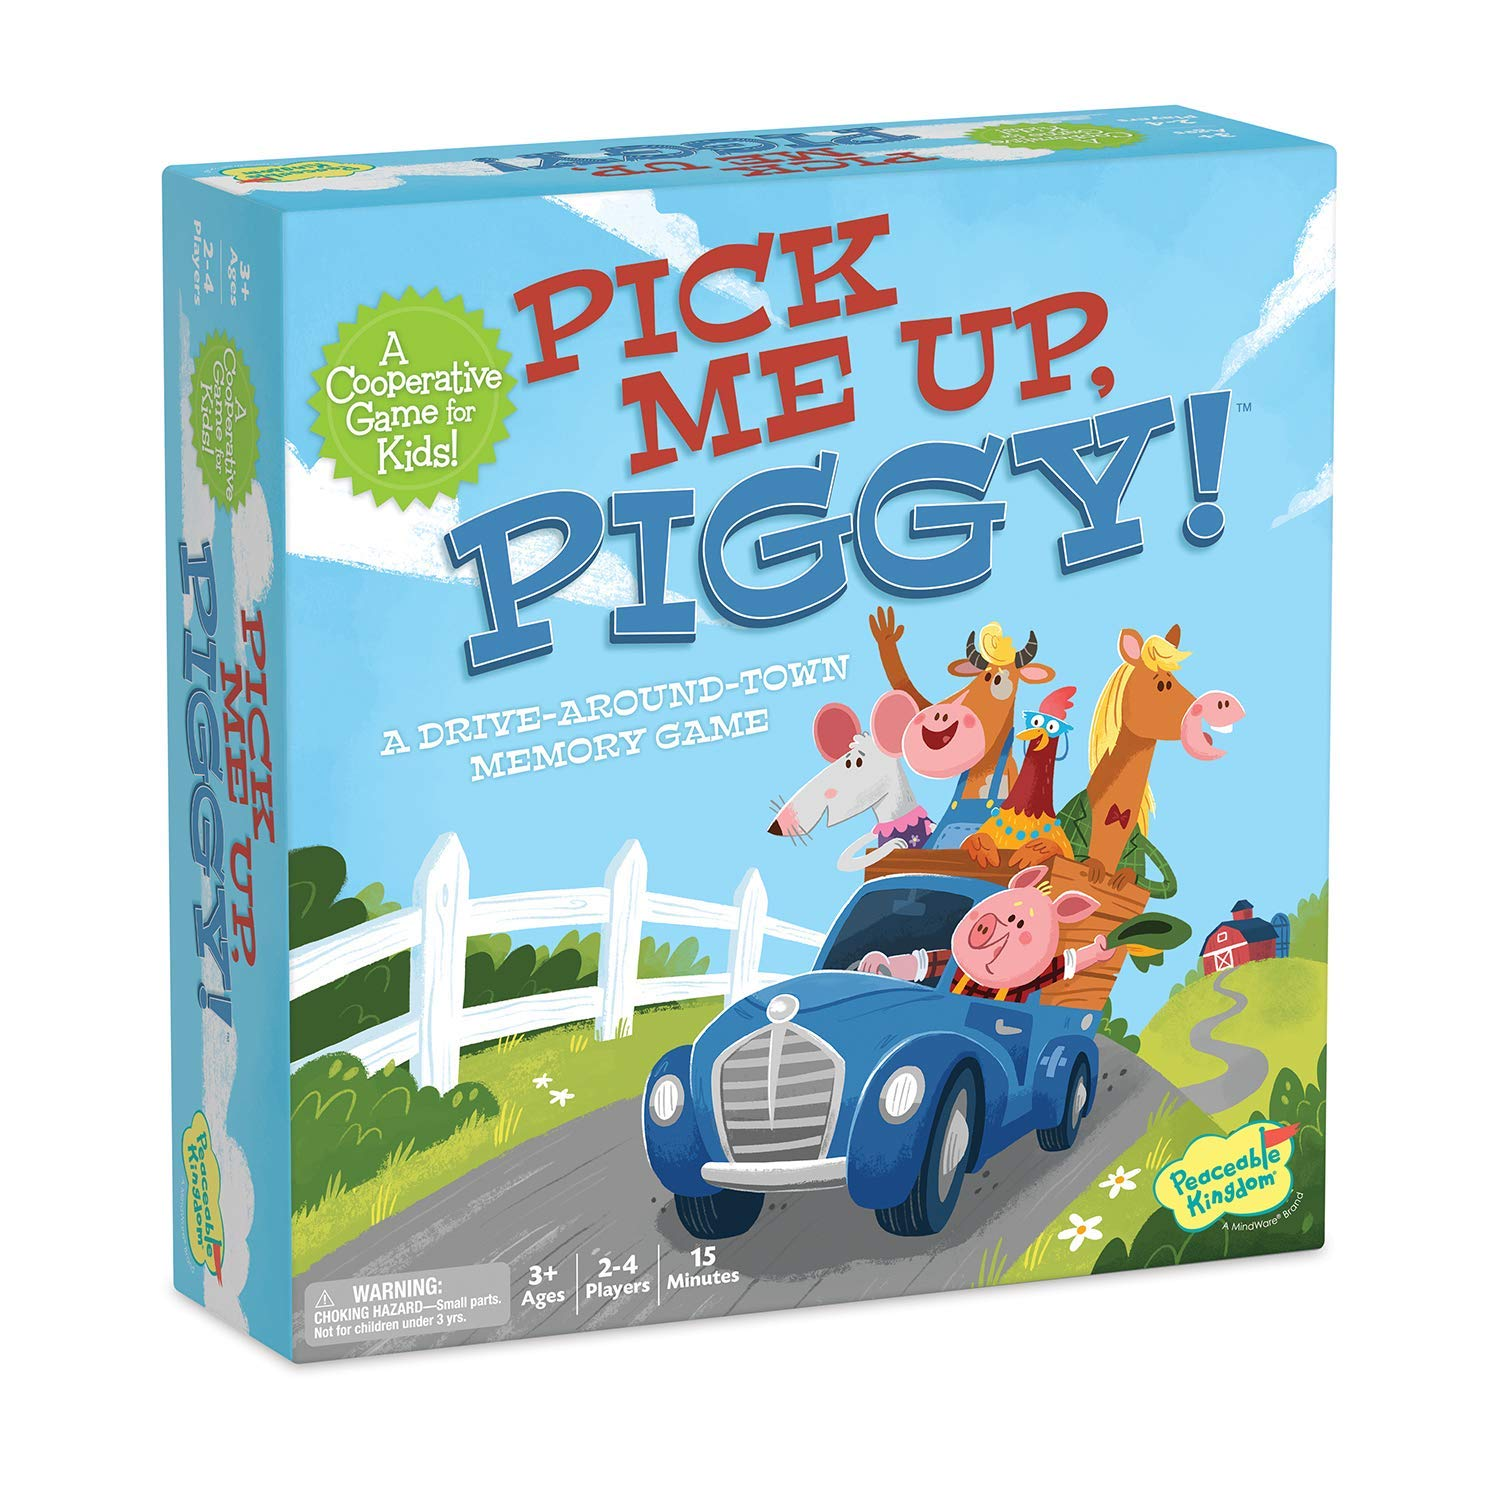 Peaceable Kingdom Pick Me Up, Piggy! - A Cooperative Memory Game for Kids